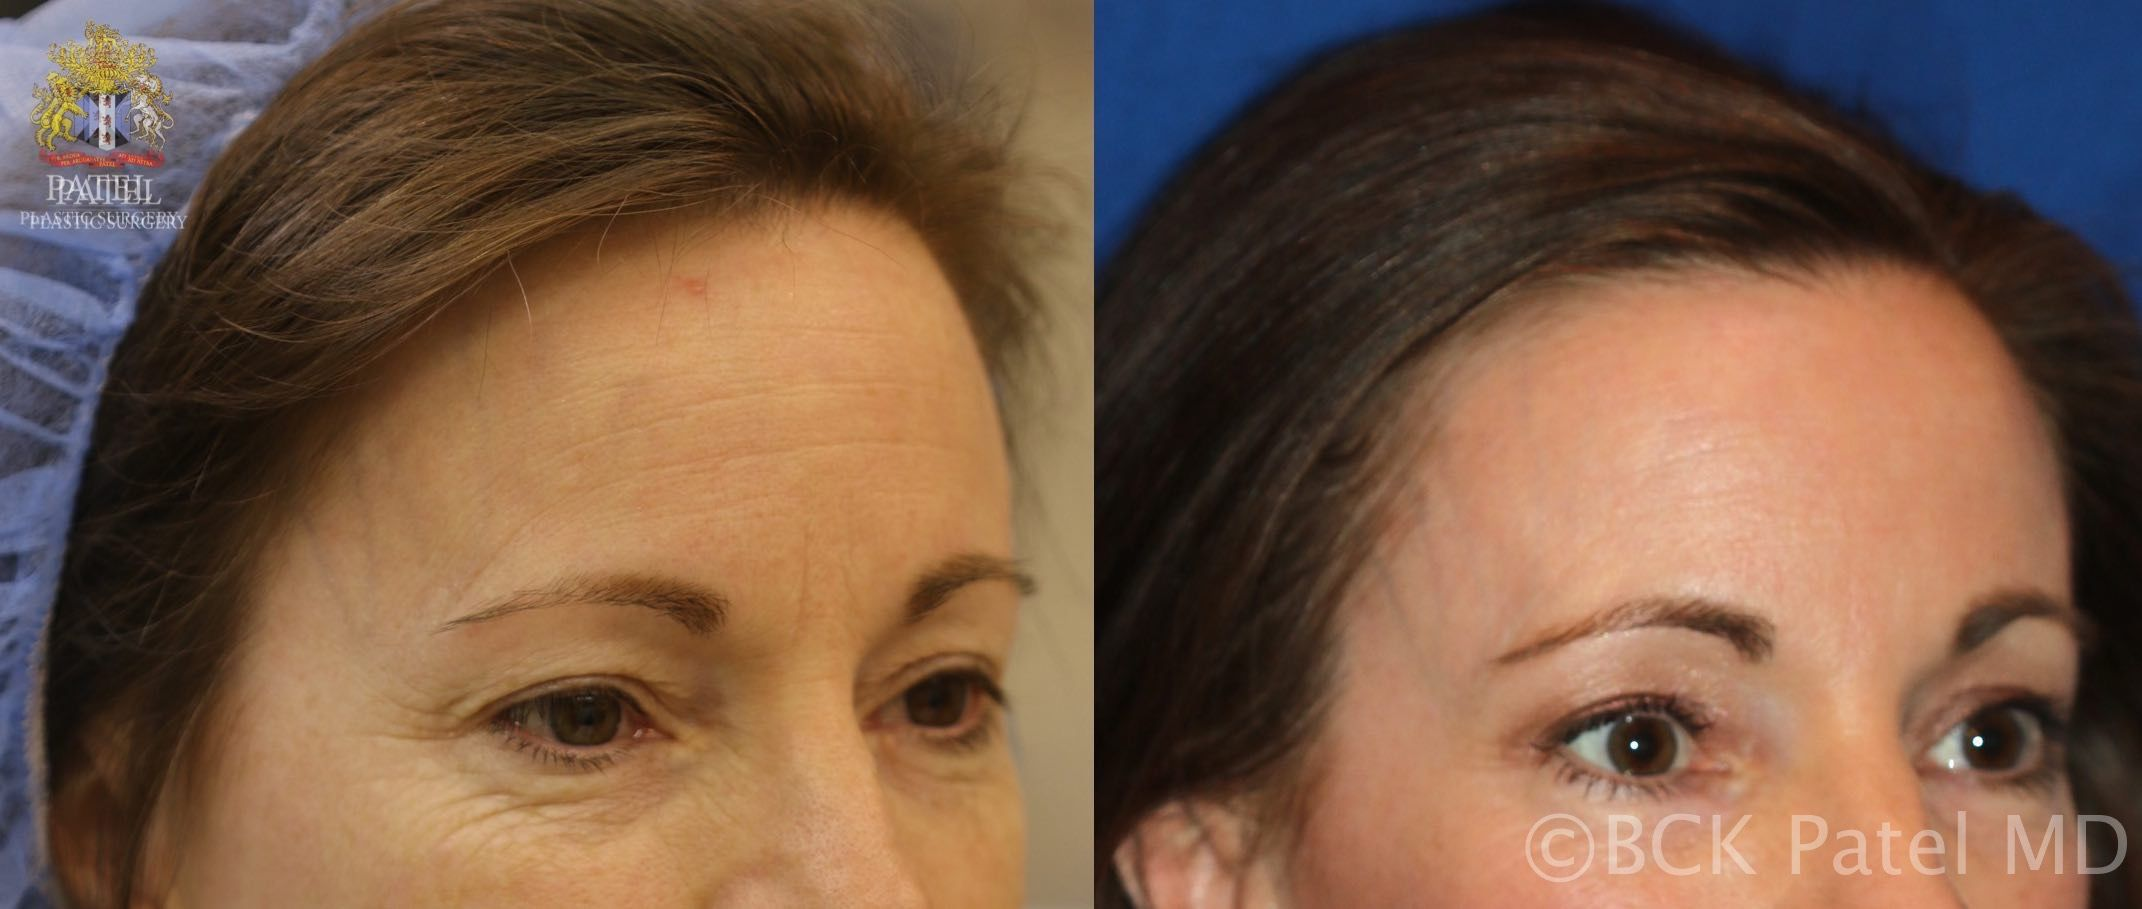 englishsurgeon.com. Improvementin the forehead skin wrinkles and coloration after fractionated CO2 laser treatment by Dr. BCK Patel MD, FRCS, Salt Lake City and St. George